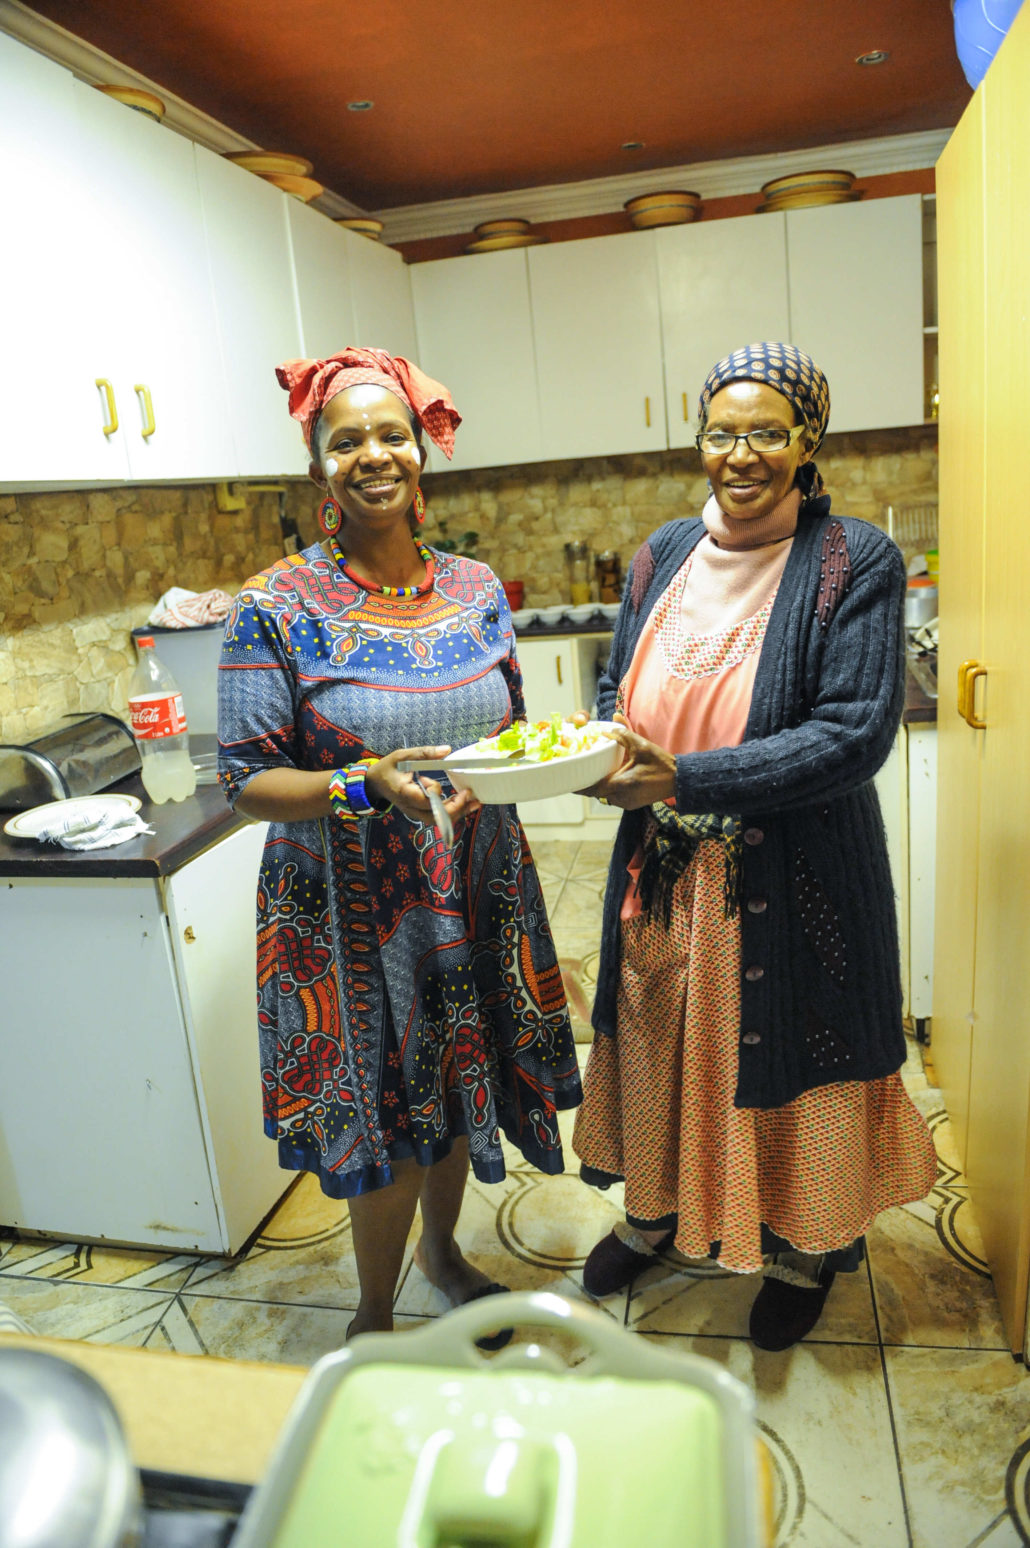 Our host, Nocawe and her mother